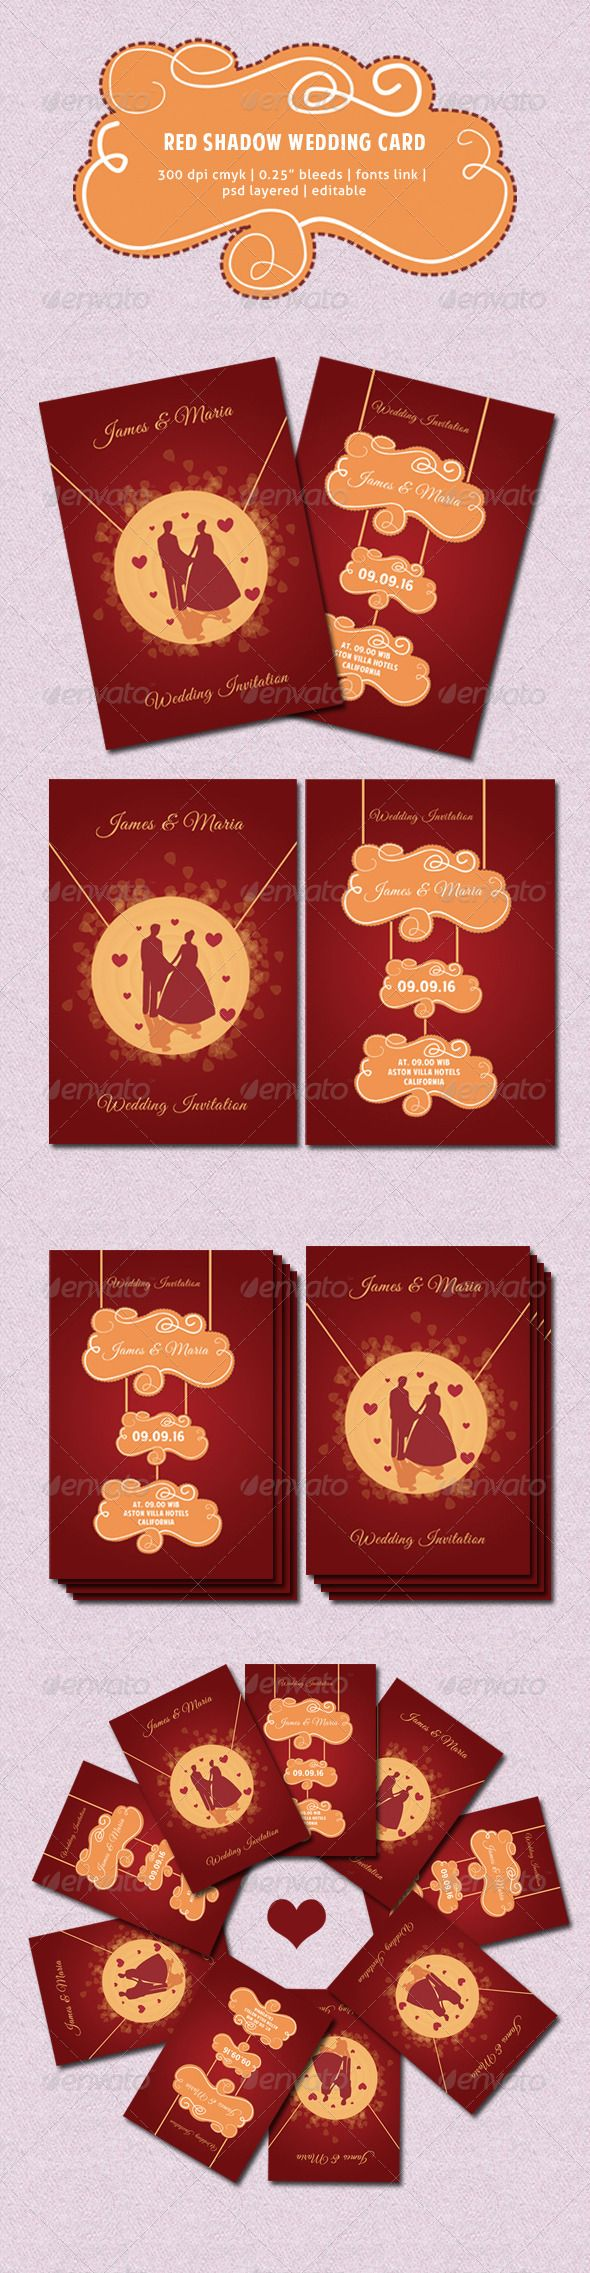 Red Shadow Wedding Card